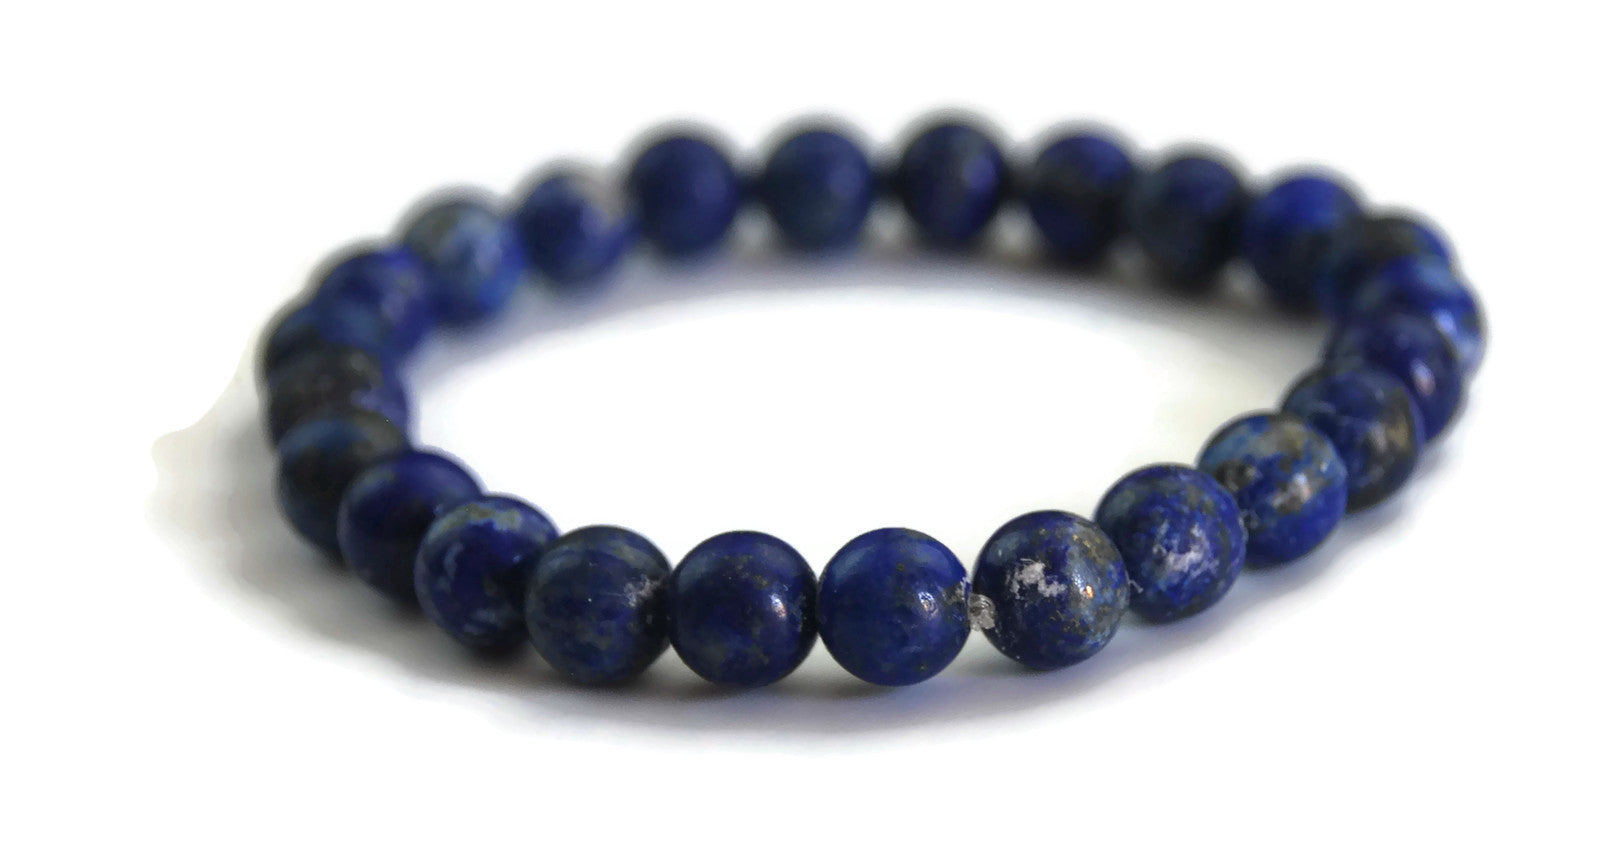 Lotus Line Blue Lapis Lazuli Stone Meditation Yoga Wrist Mala Stretch Bracelet, Third Eye Chakra